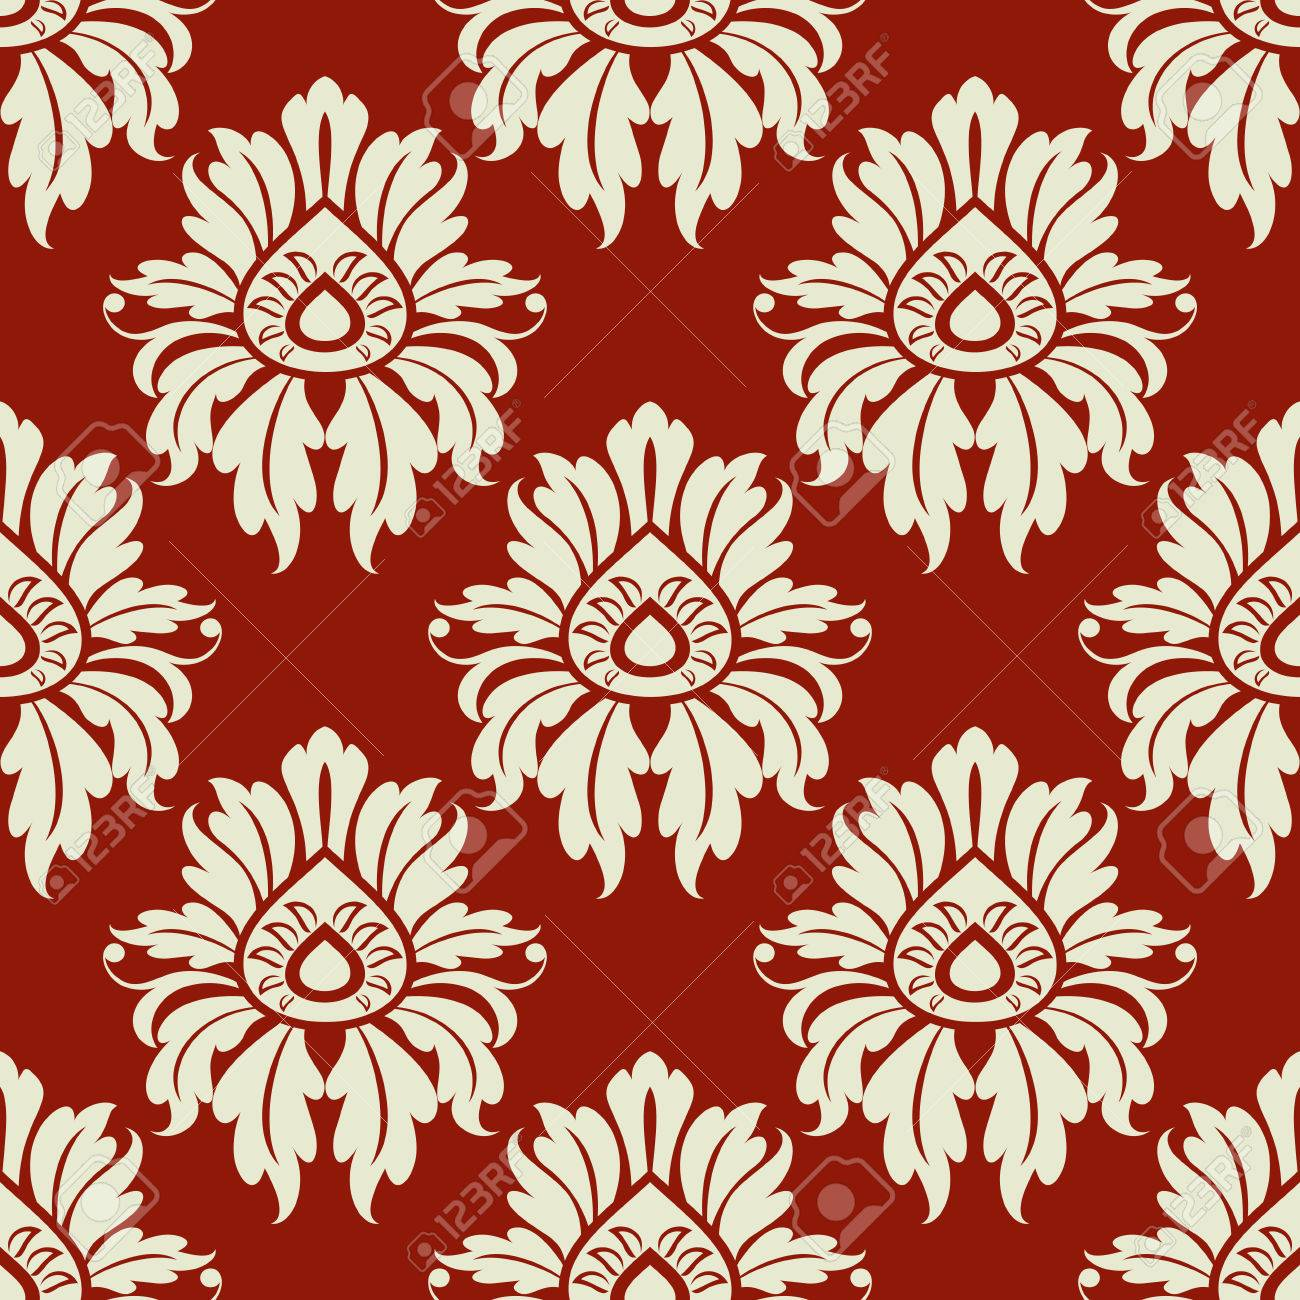 Beige Floral Seamless Pattern On Maroon Background For Wallpaper